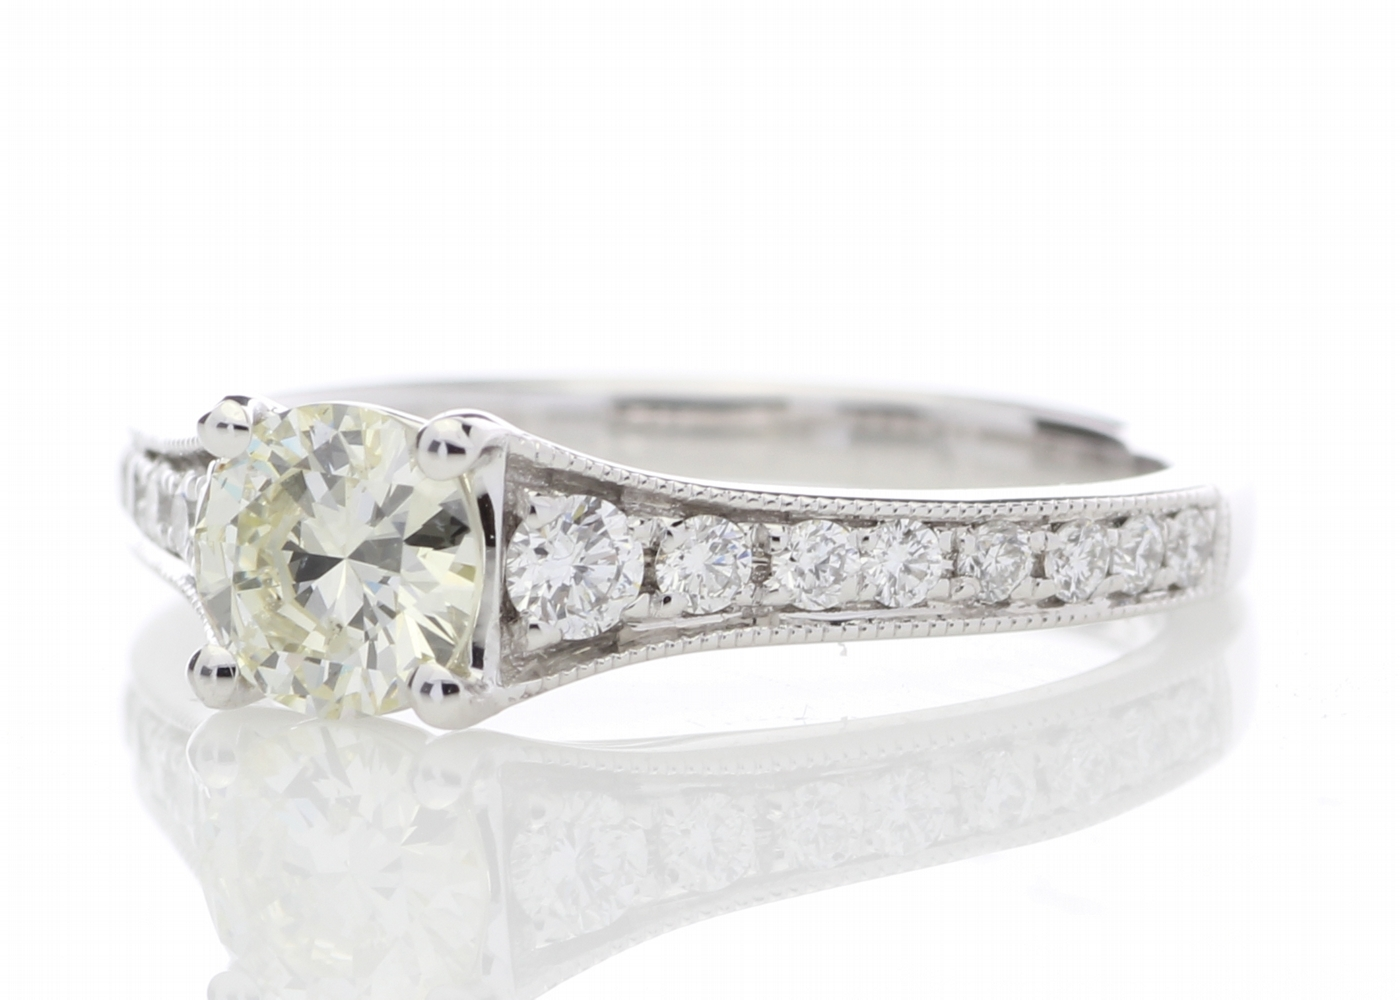 18ct White Gold Diamond Ring With Stone Set Shoulders 0.80 Carats - Image 2 of 5